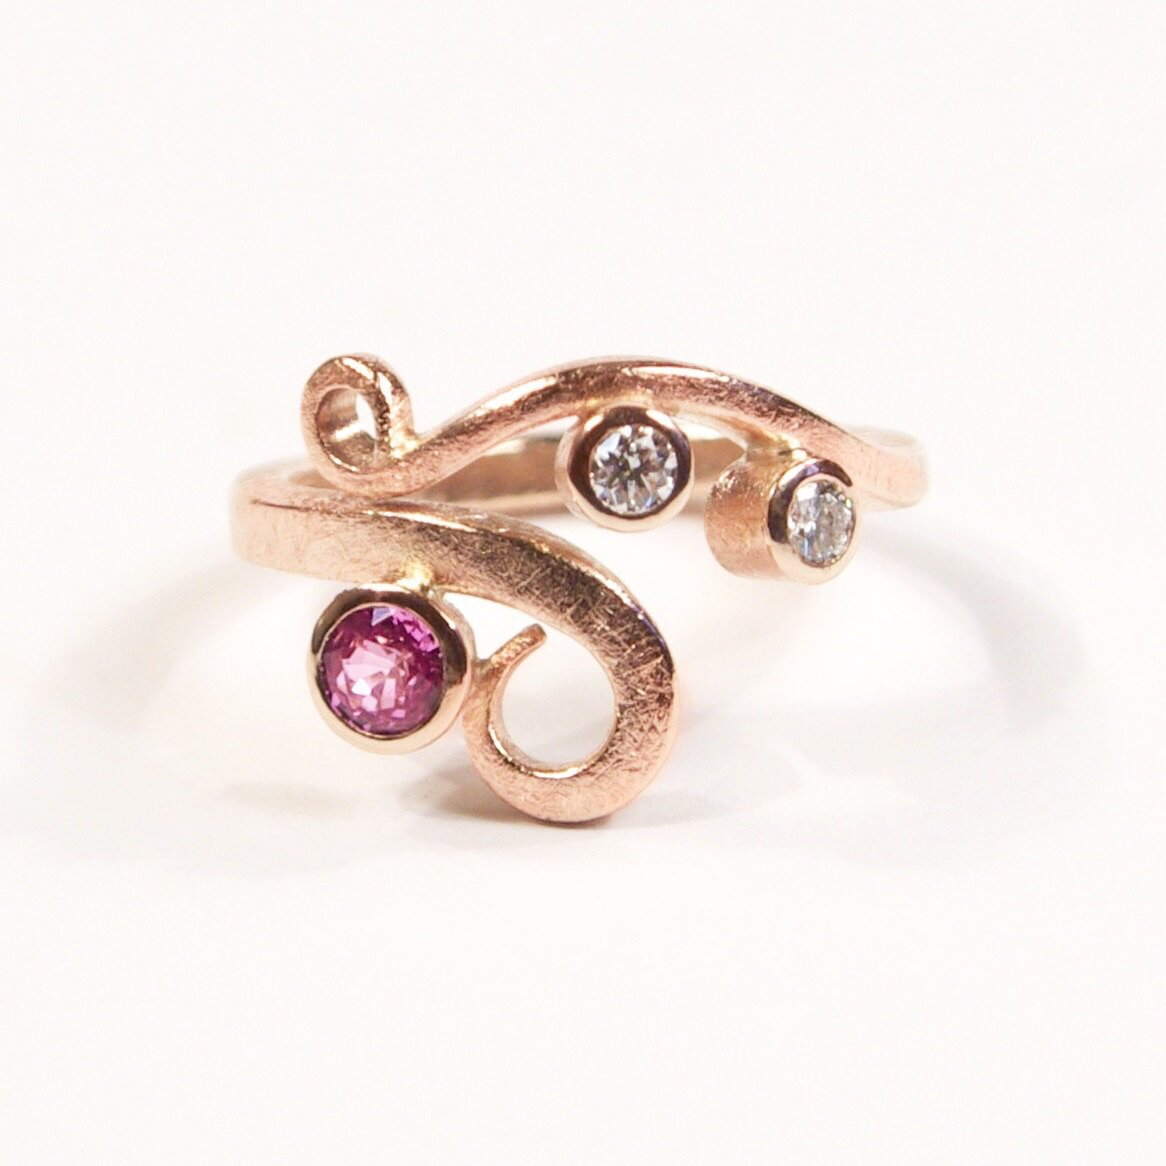 Classic Curl Ring: 9ct Red Gold with Pink & White Sapphires